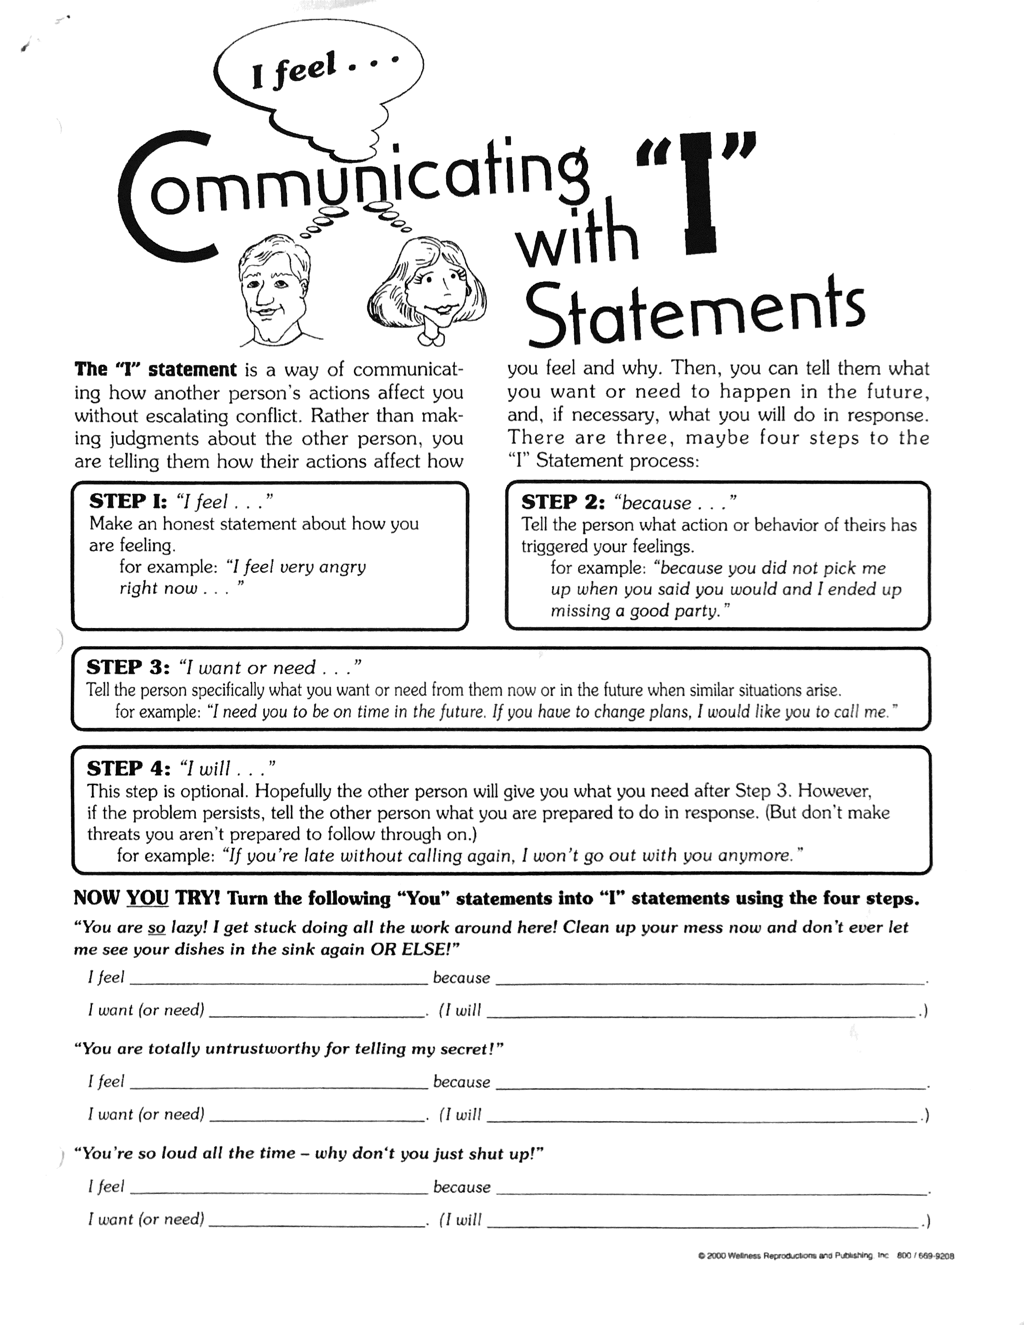 Suicidal Ideation Worksheets